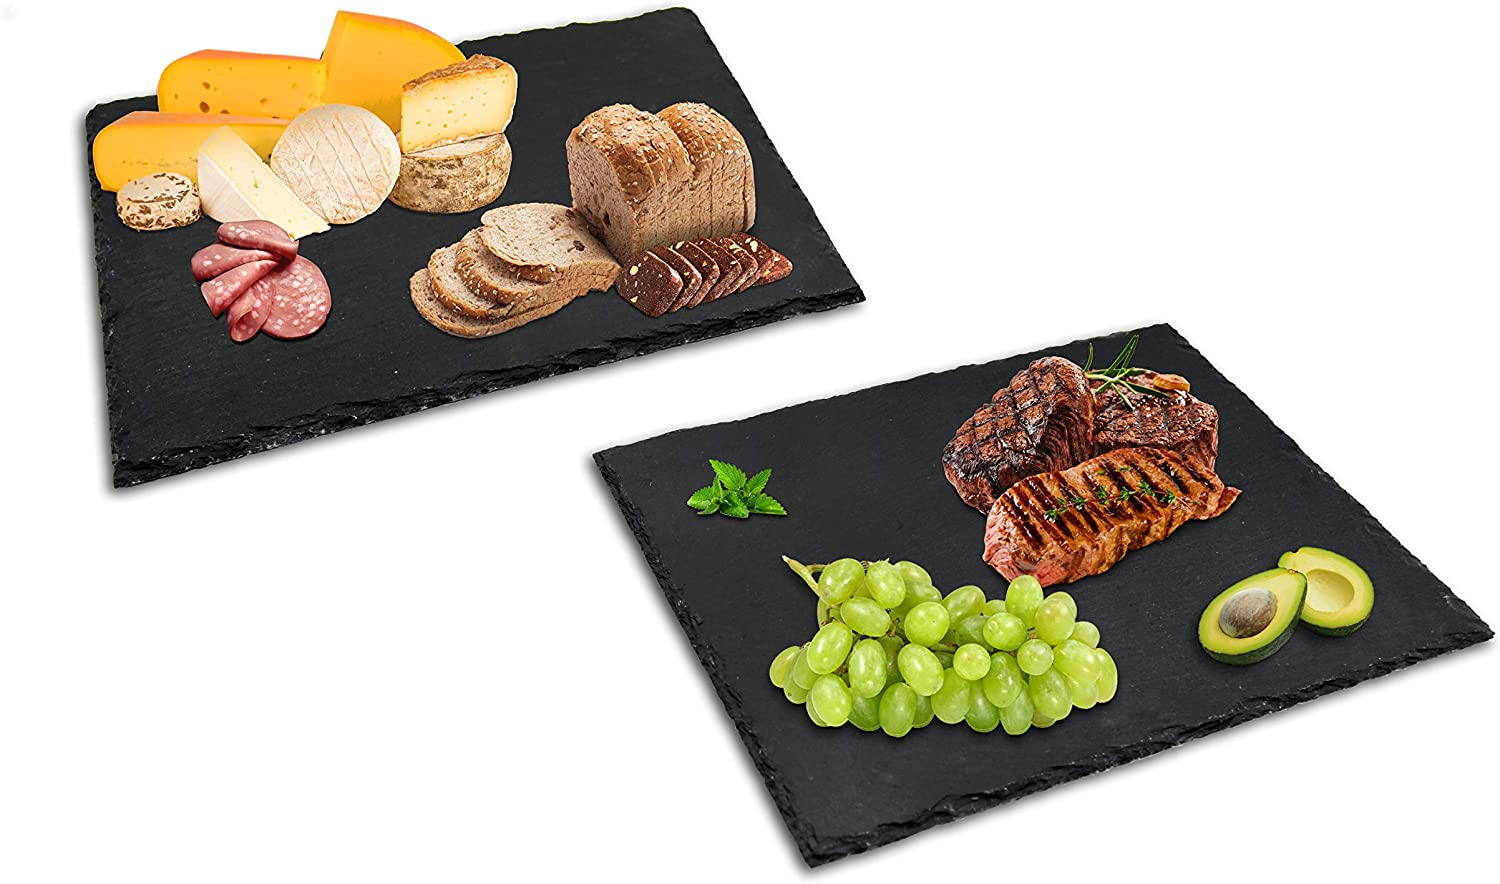 Extra Large Slate Cutting Plates 16x12In(30×40cm),2pc Natural Stone Rock Black Cutting Board Cheese Board,Charcuterie Boards for Cheese,Sushi Mat,Pastry,Bread,Snack and Meat board Set (Set of 2 Pcs)